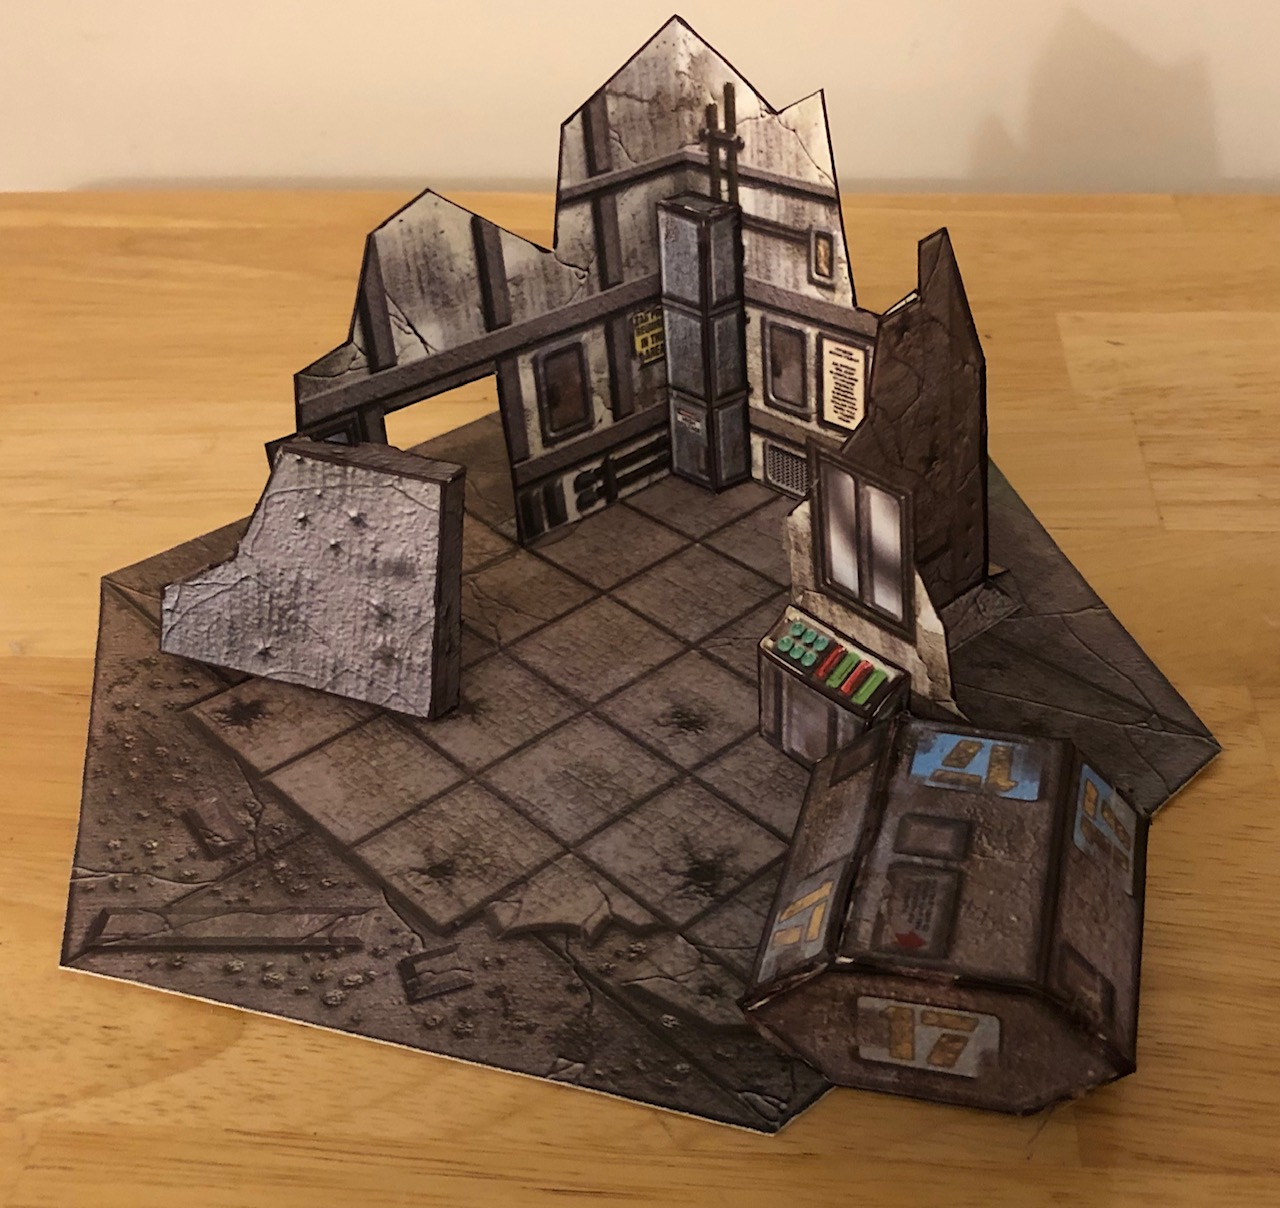 A papercraft industrial building, wrecked, along with some scatter pieces, also papercraft.